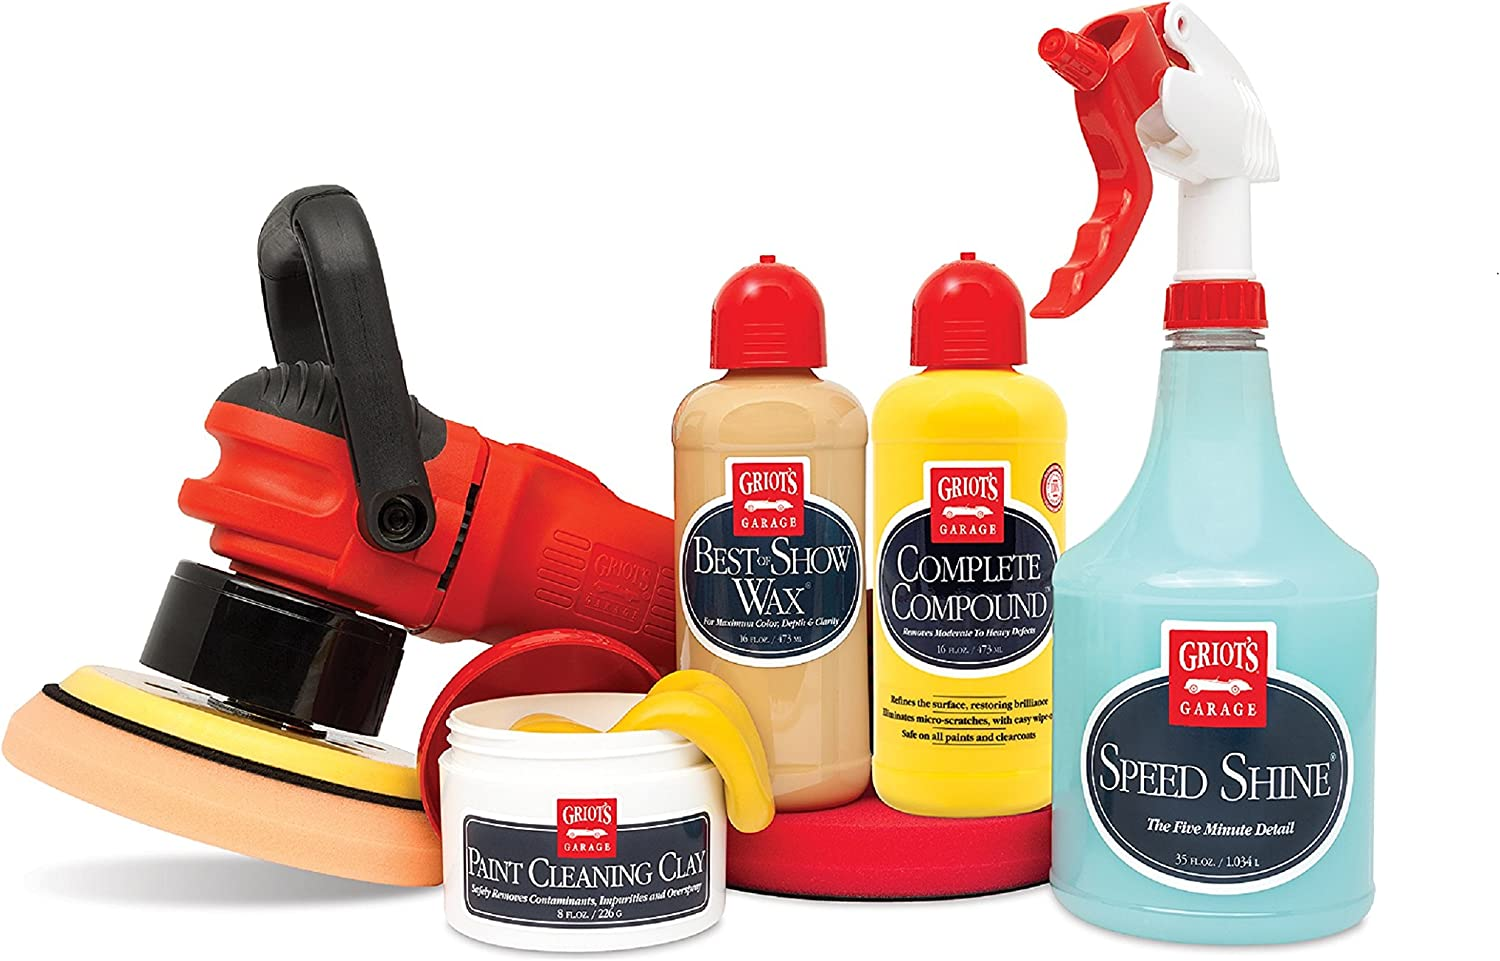 Griot's Garage Direct stock discount 11620Z Orbital Wax Correcting and Max 74% OFF Kit